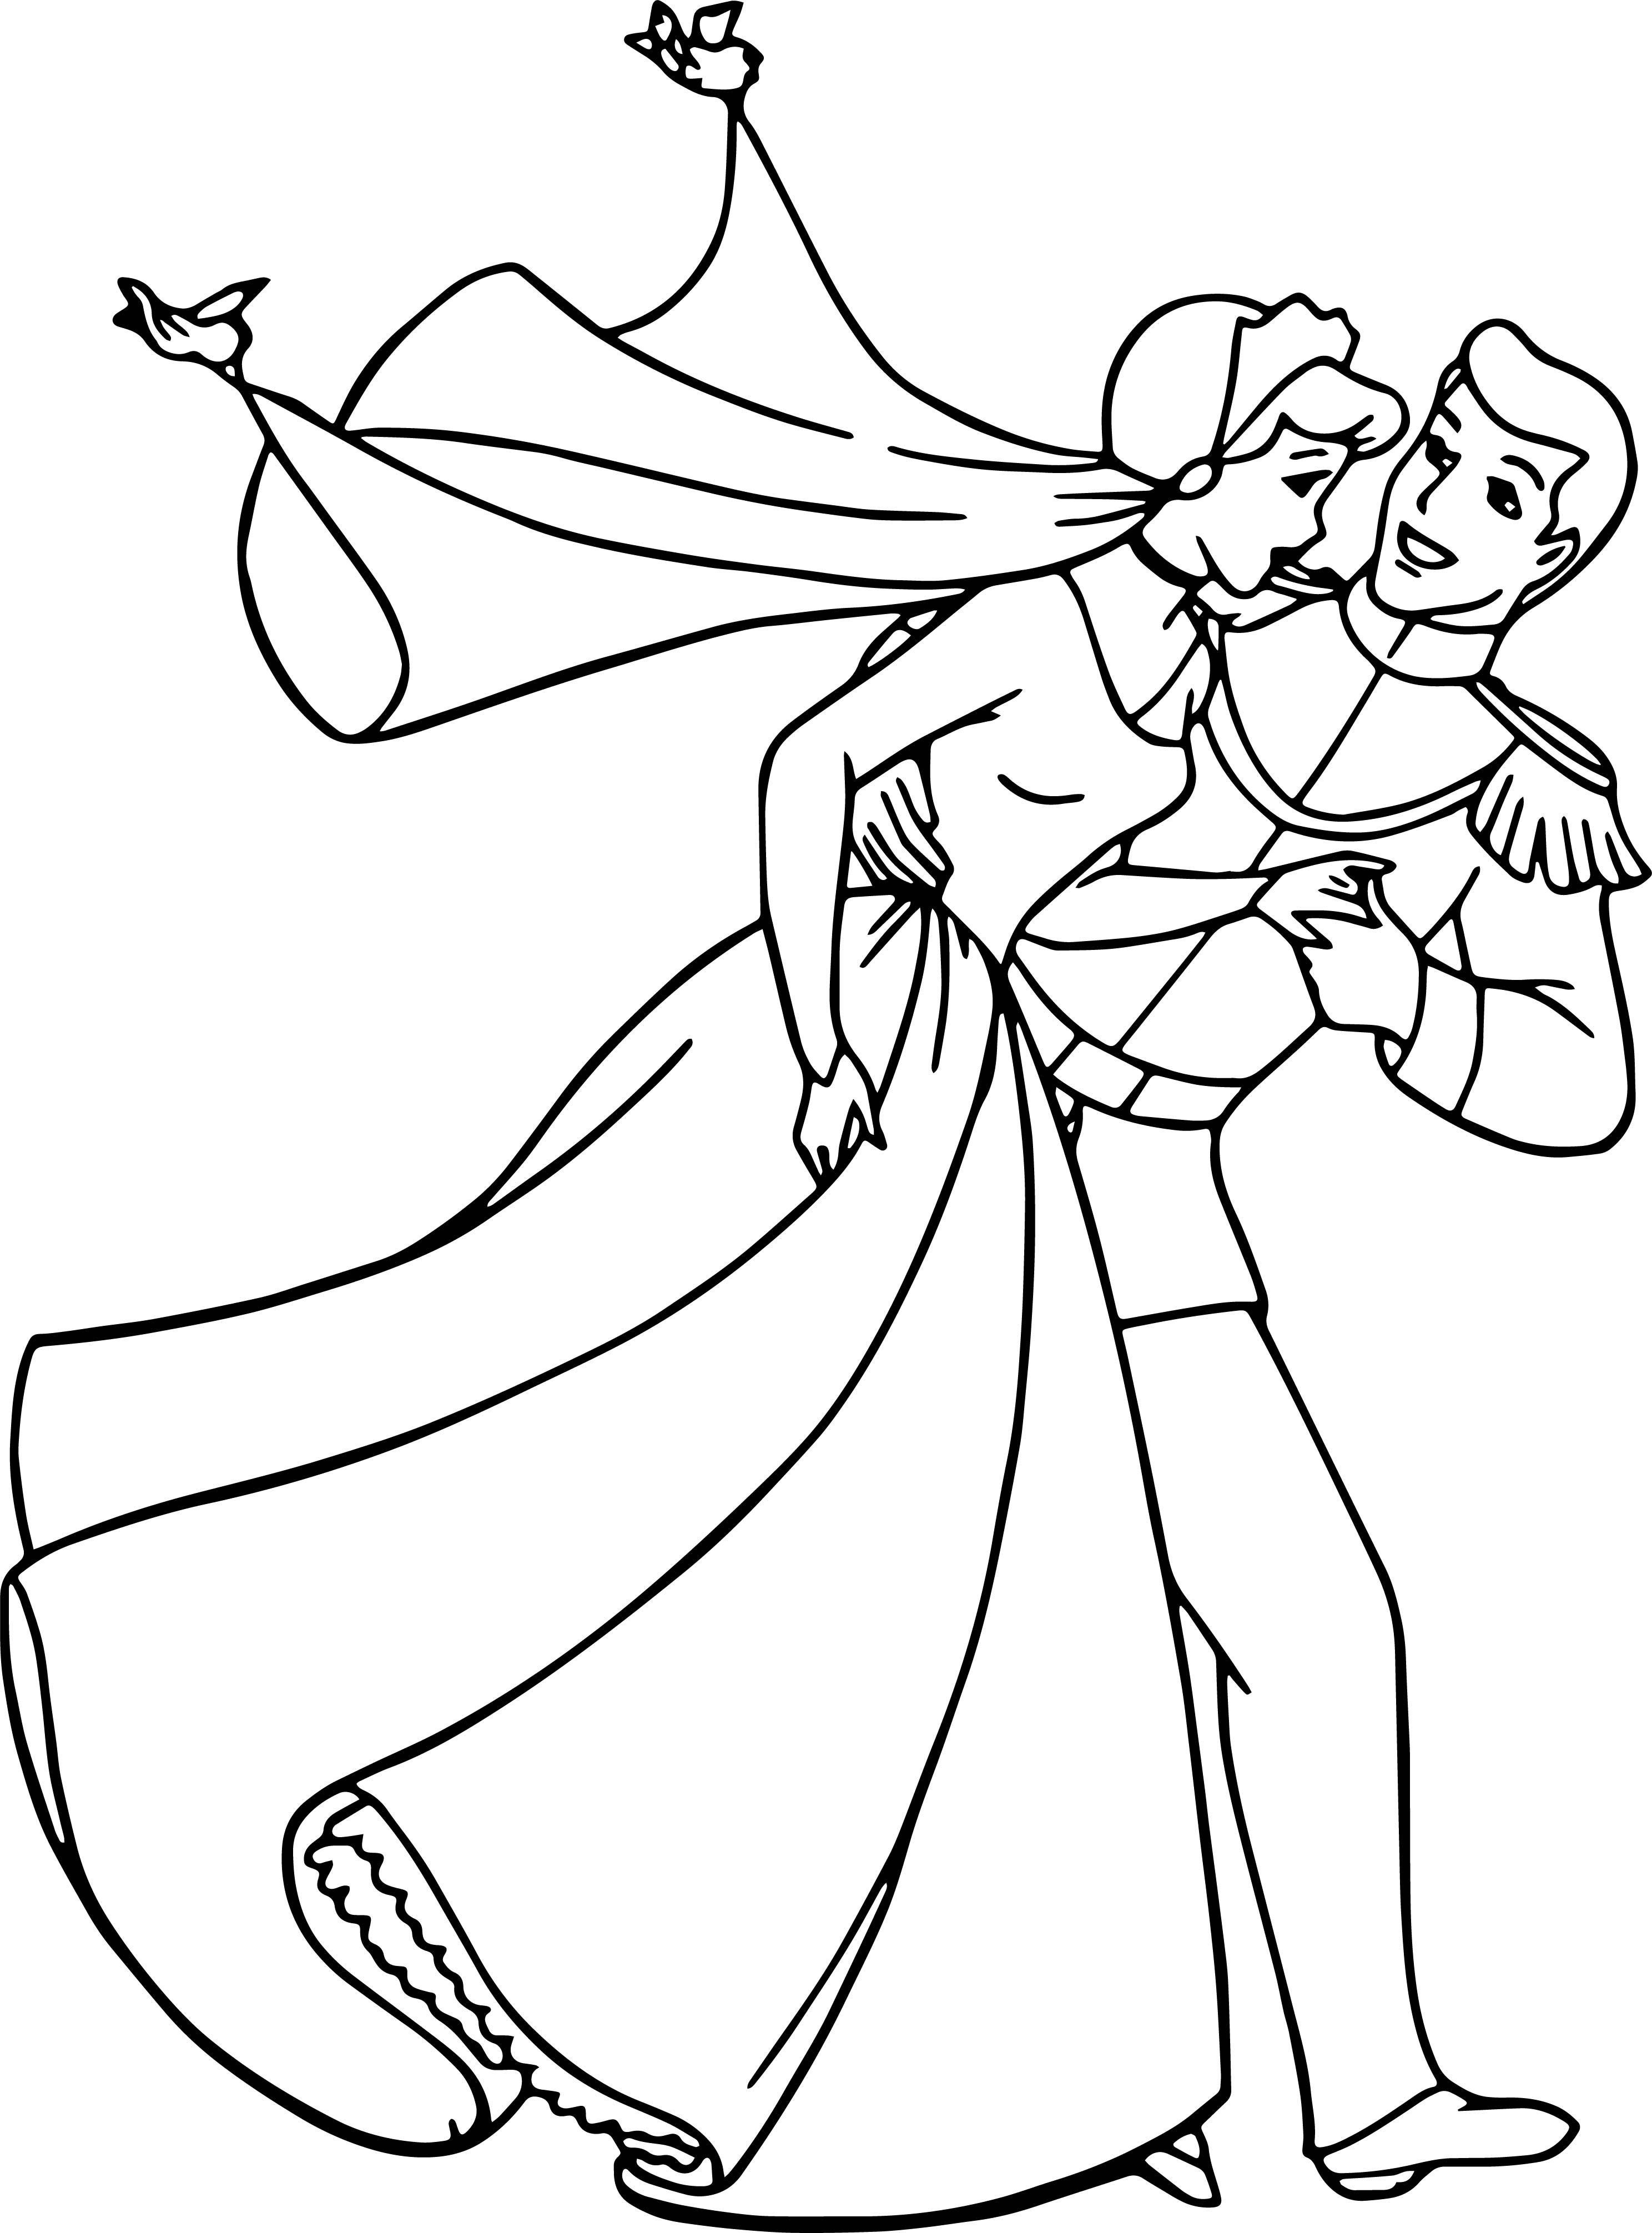 Cinderella And Prince Charming Run Coloring Pages | wecoloringpage ...